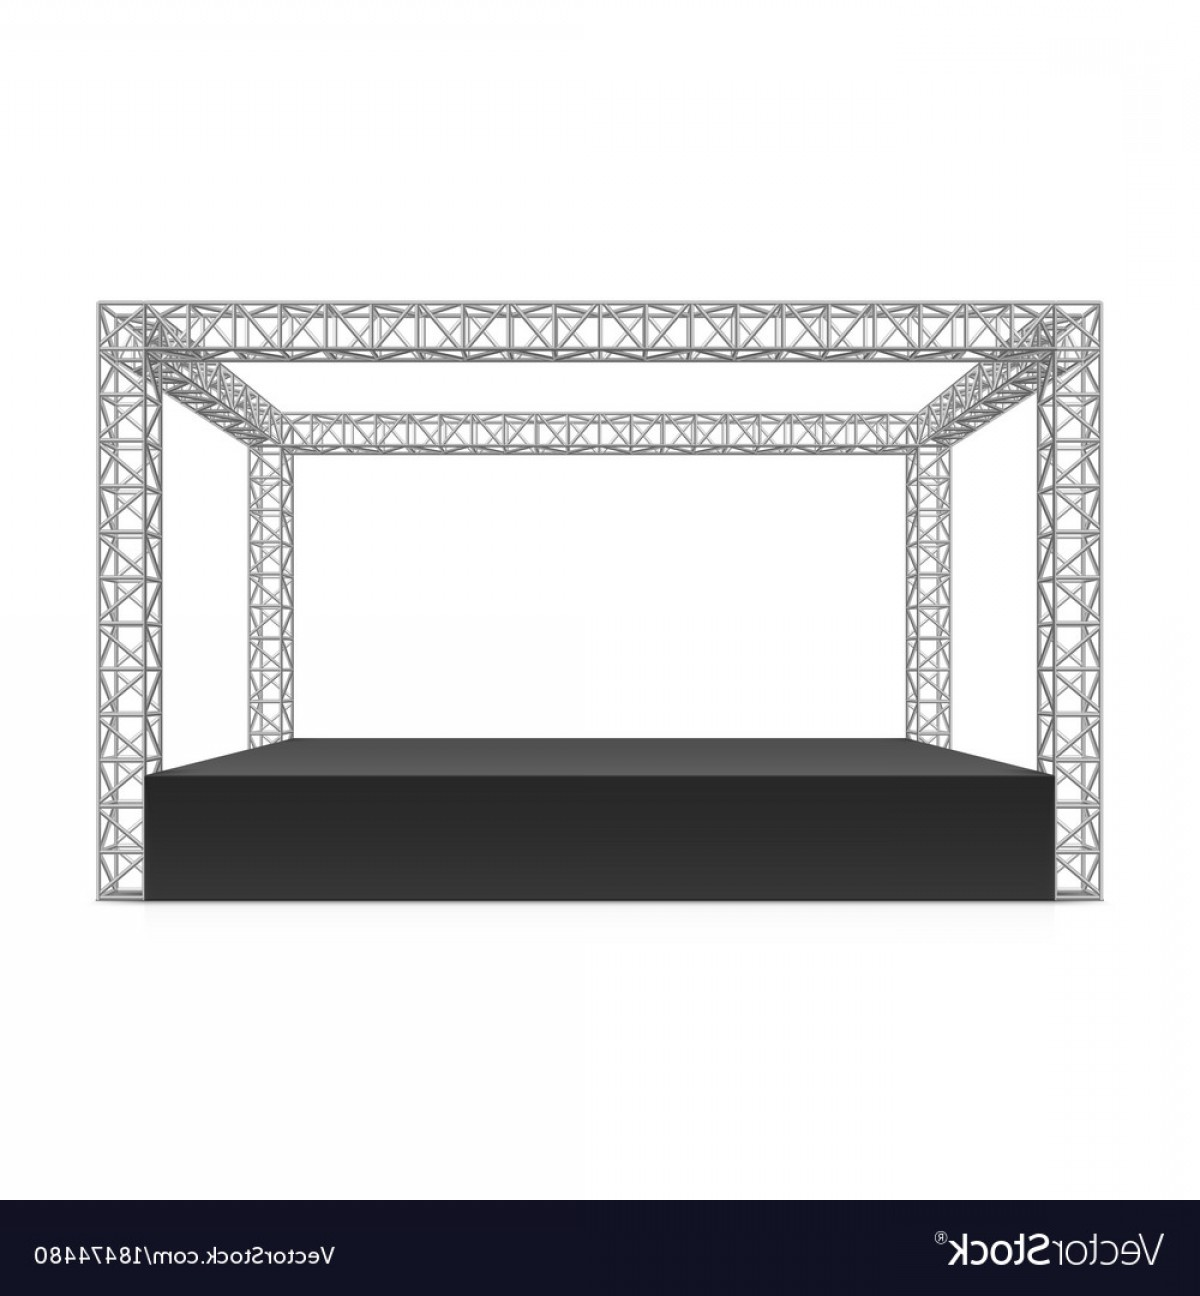 Aluminum Truss Design Vector: Outdoor Festival Stage Truss System Vector